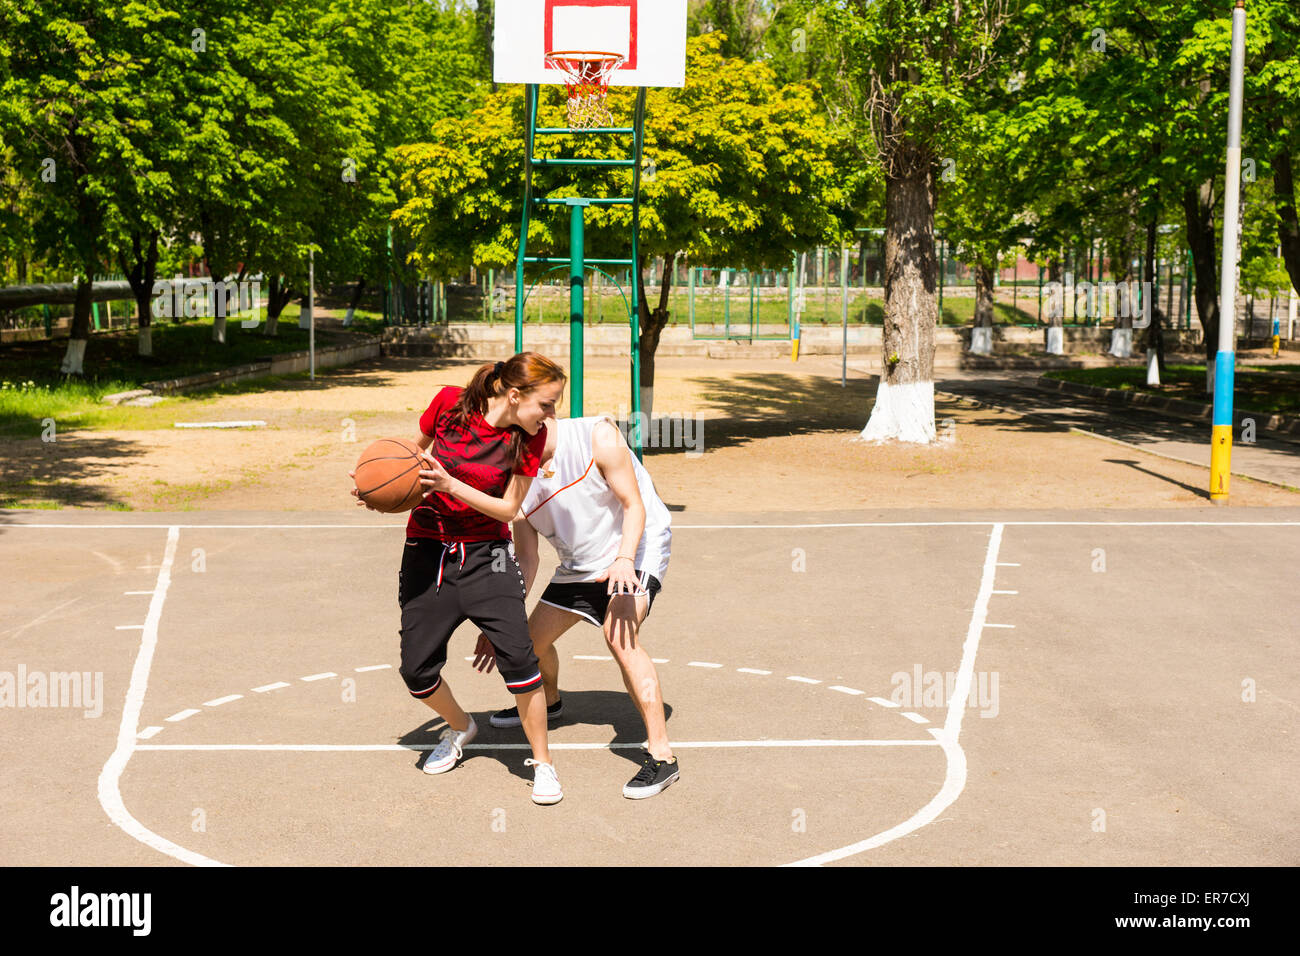 Young Athletic Couple Playing Basketball Together On Outdoor Court